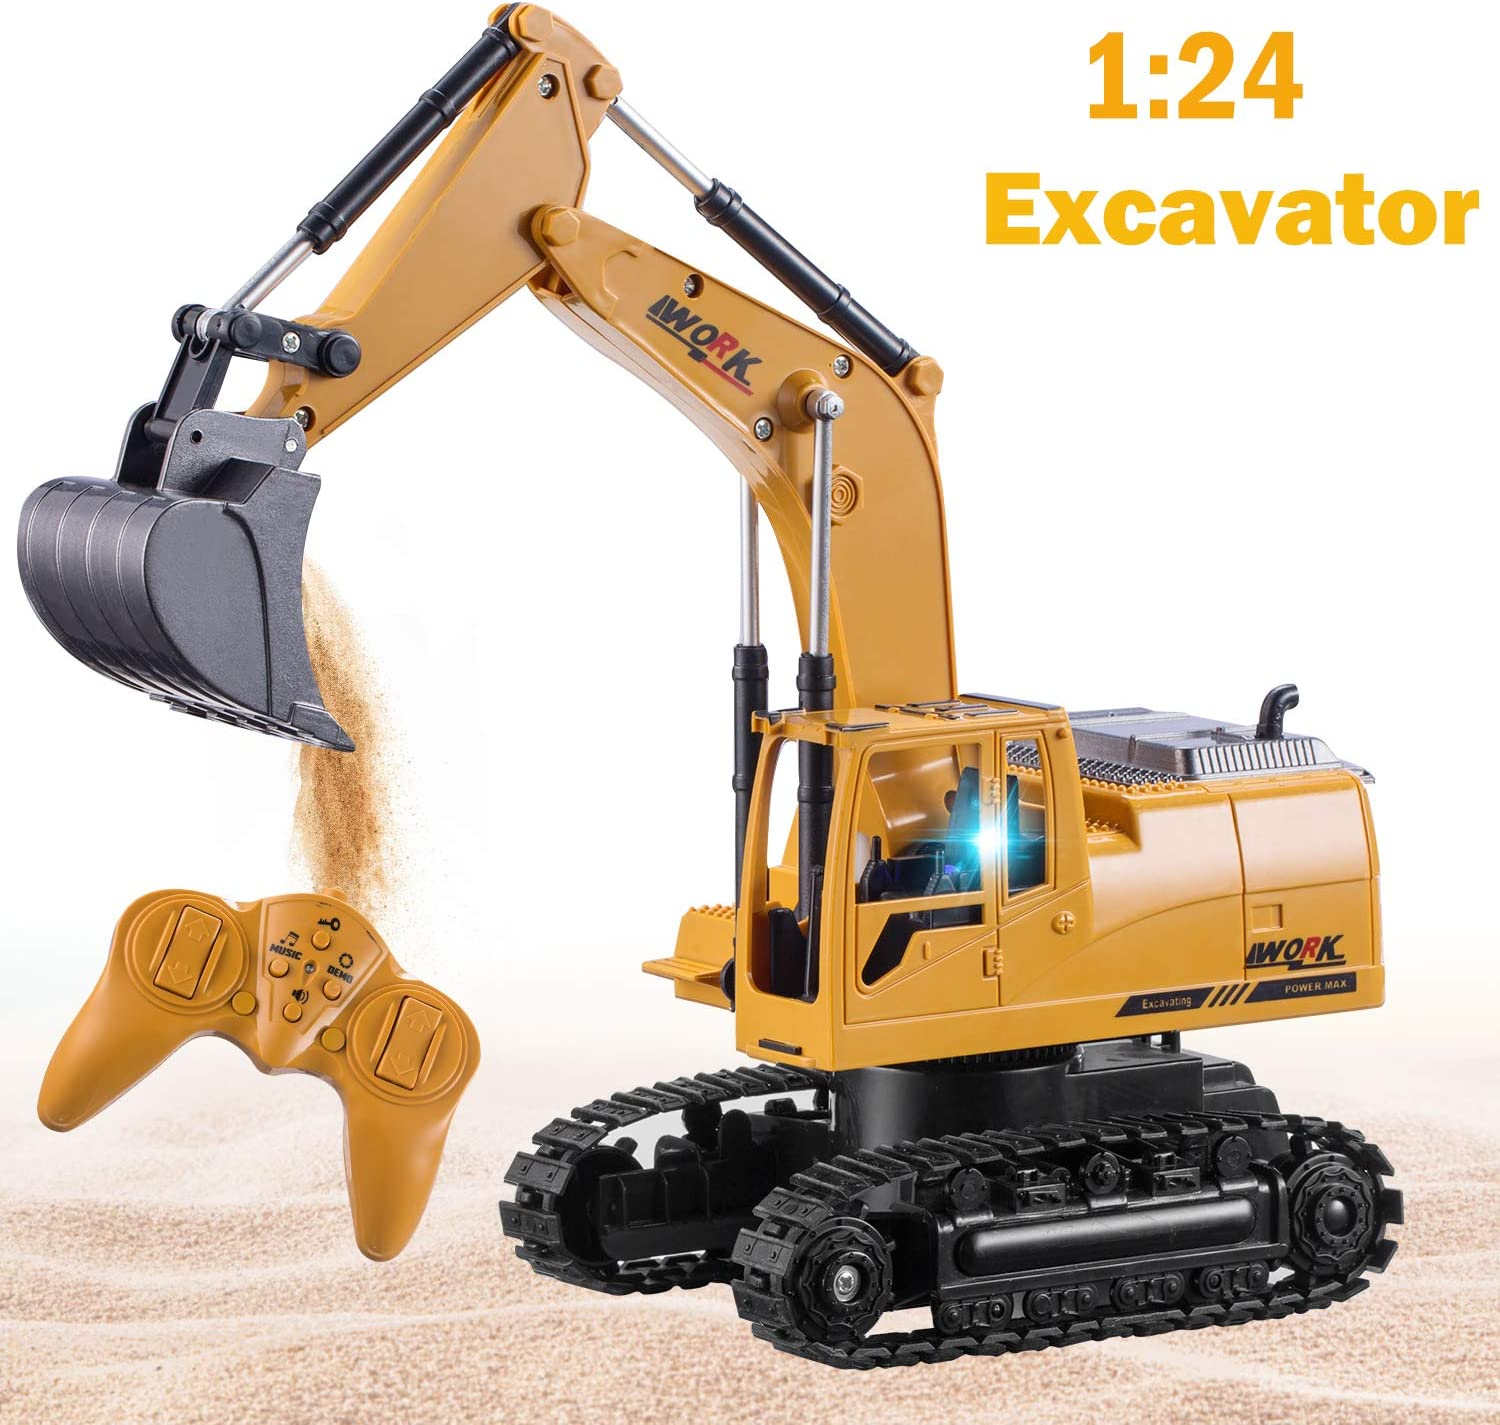 Remote Control Excavator Toy for Boys and Girls,Toy for boy Gifts Birthday Gift for Boys,Toy Excavator with Flashing Lights Birthday Gift for Boys/,Toy Excavator with Flashing Lights Toyard